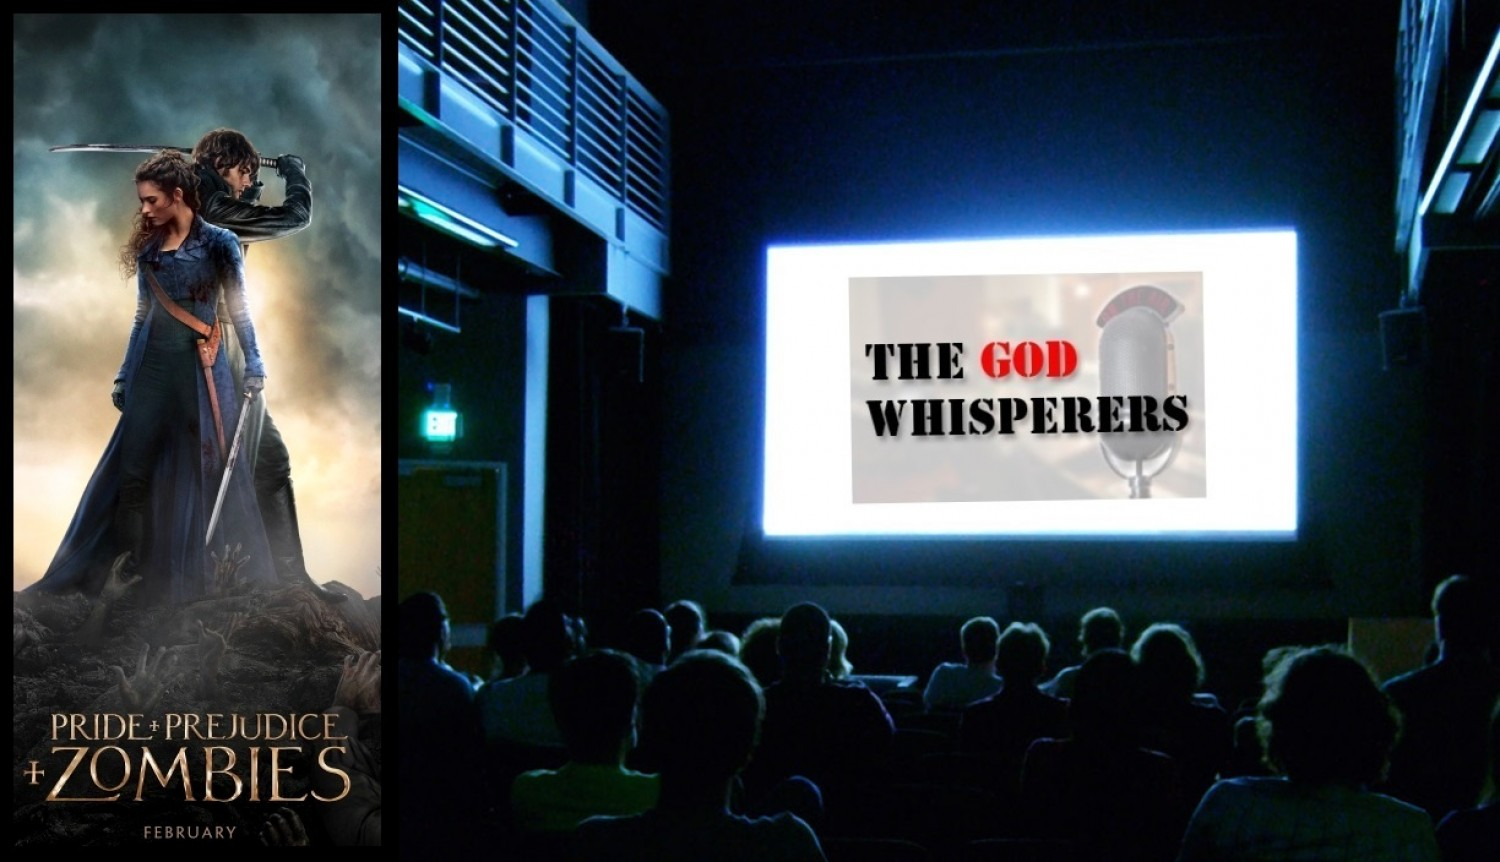 Pr. Ted Giese On The God Whisperers With Donofrio & Cwirla - Pride and Prejudice and Zombies Edition